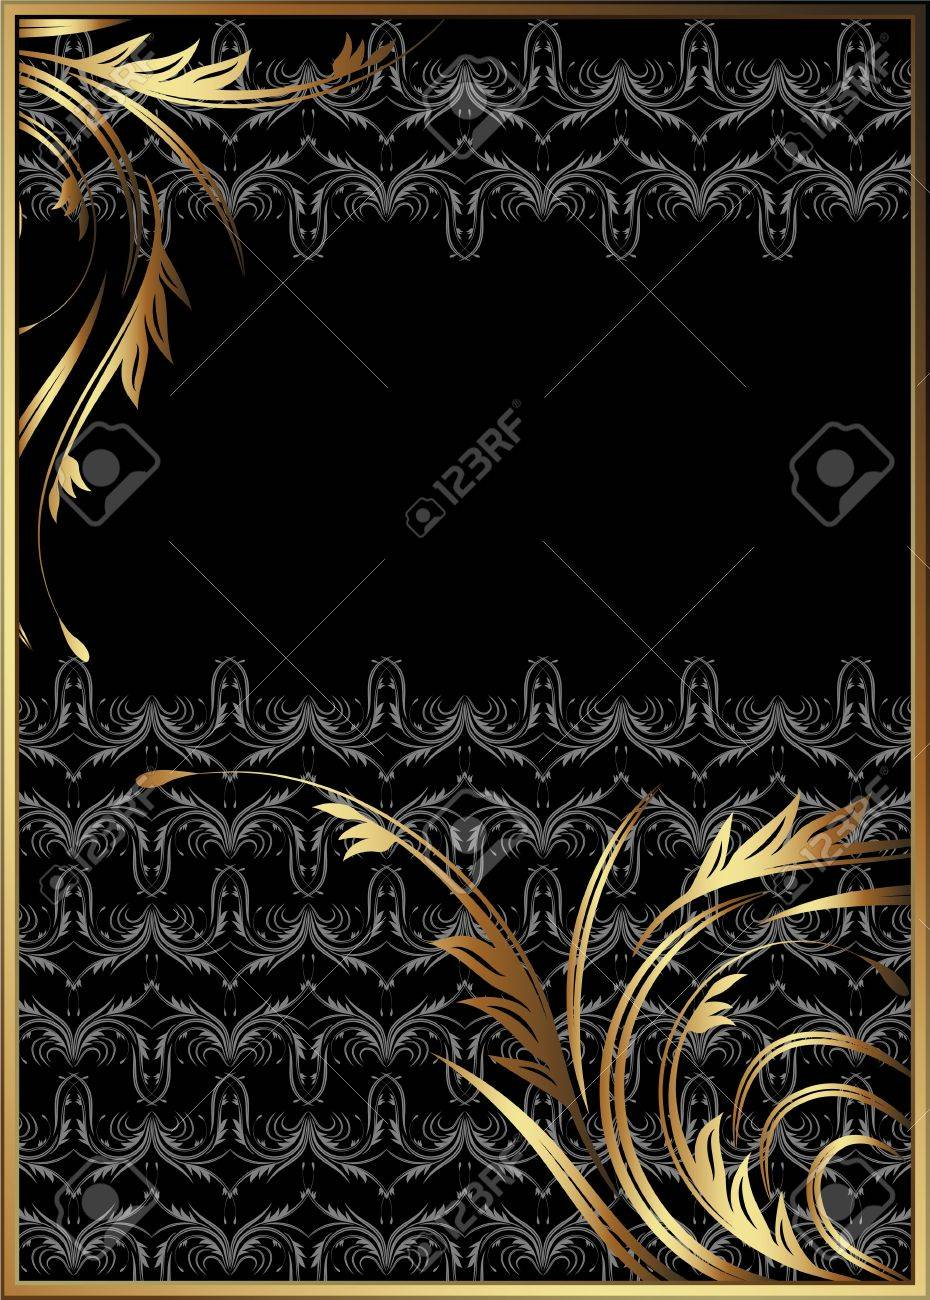 Background with golden ornament for various design artwork Stock Vector - 11622697